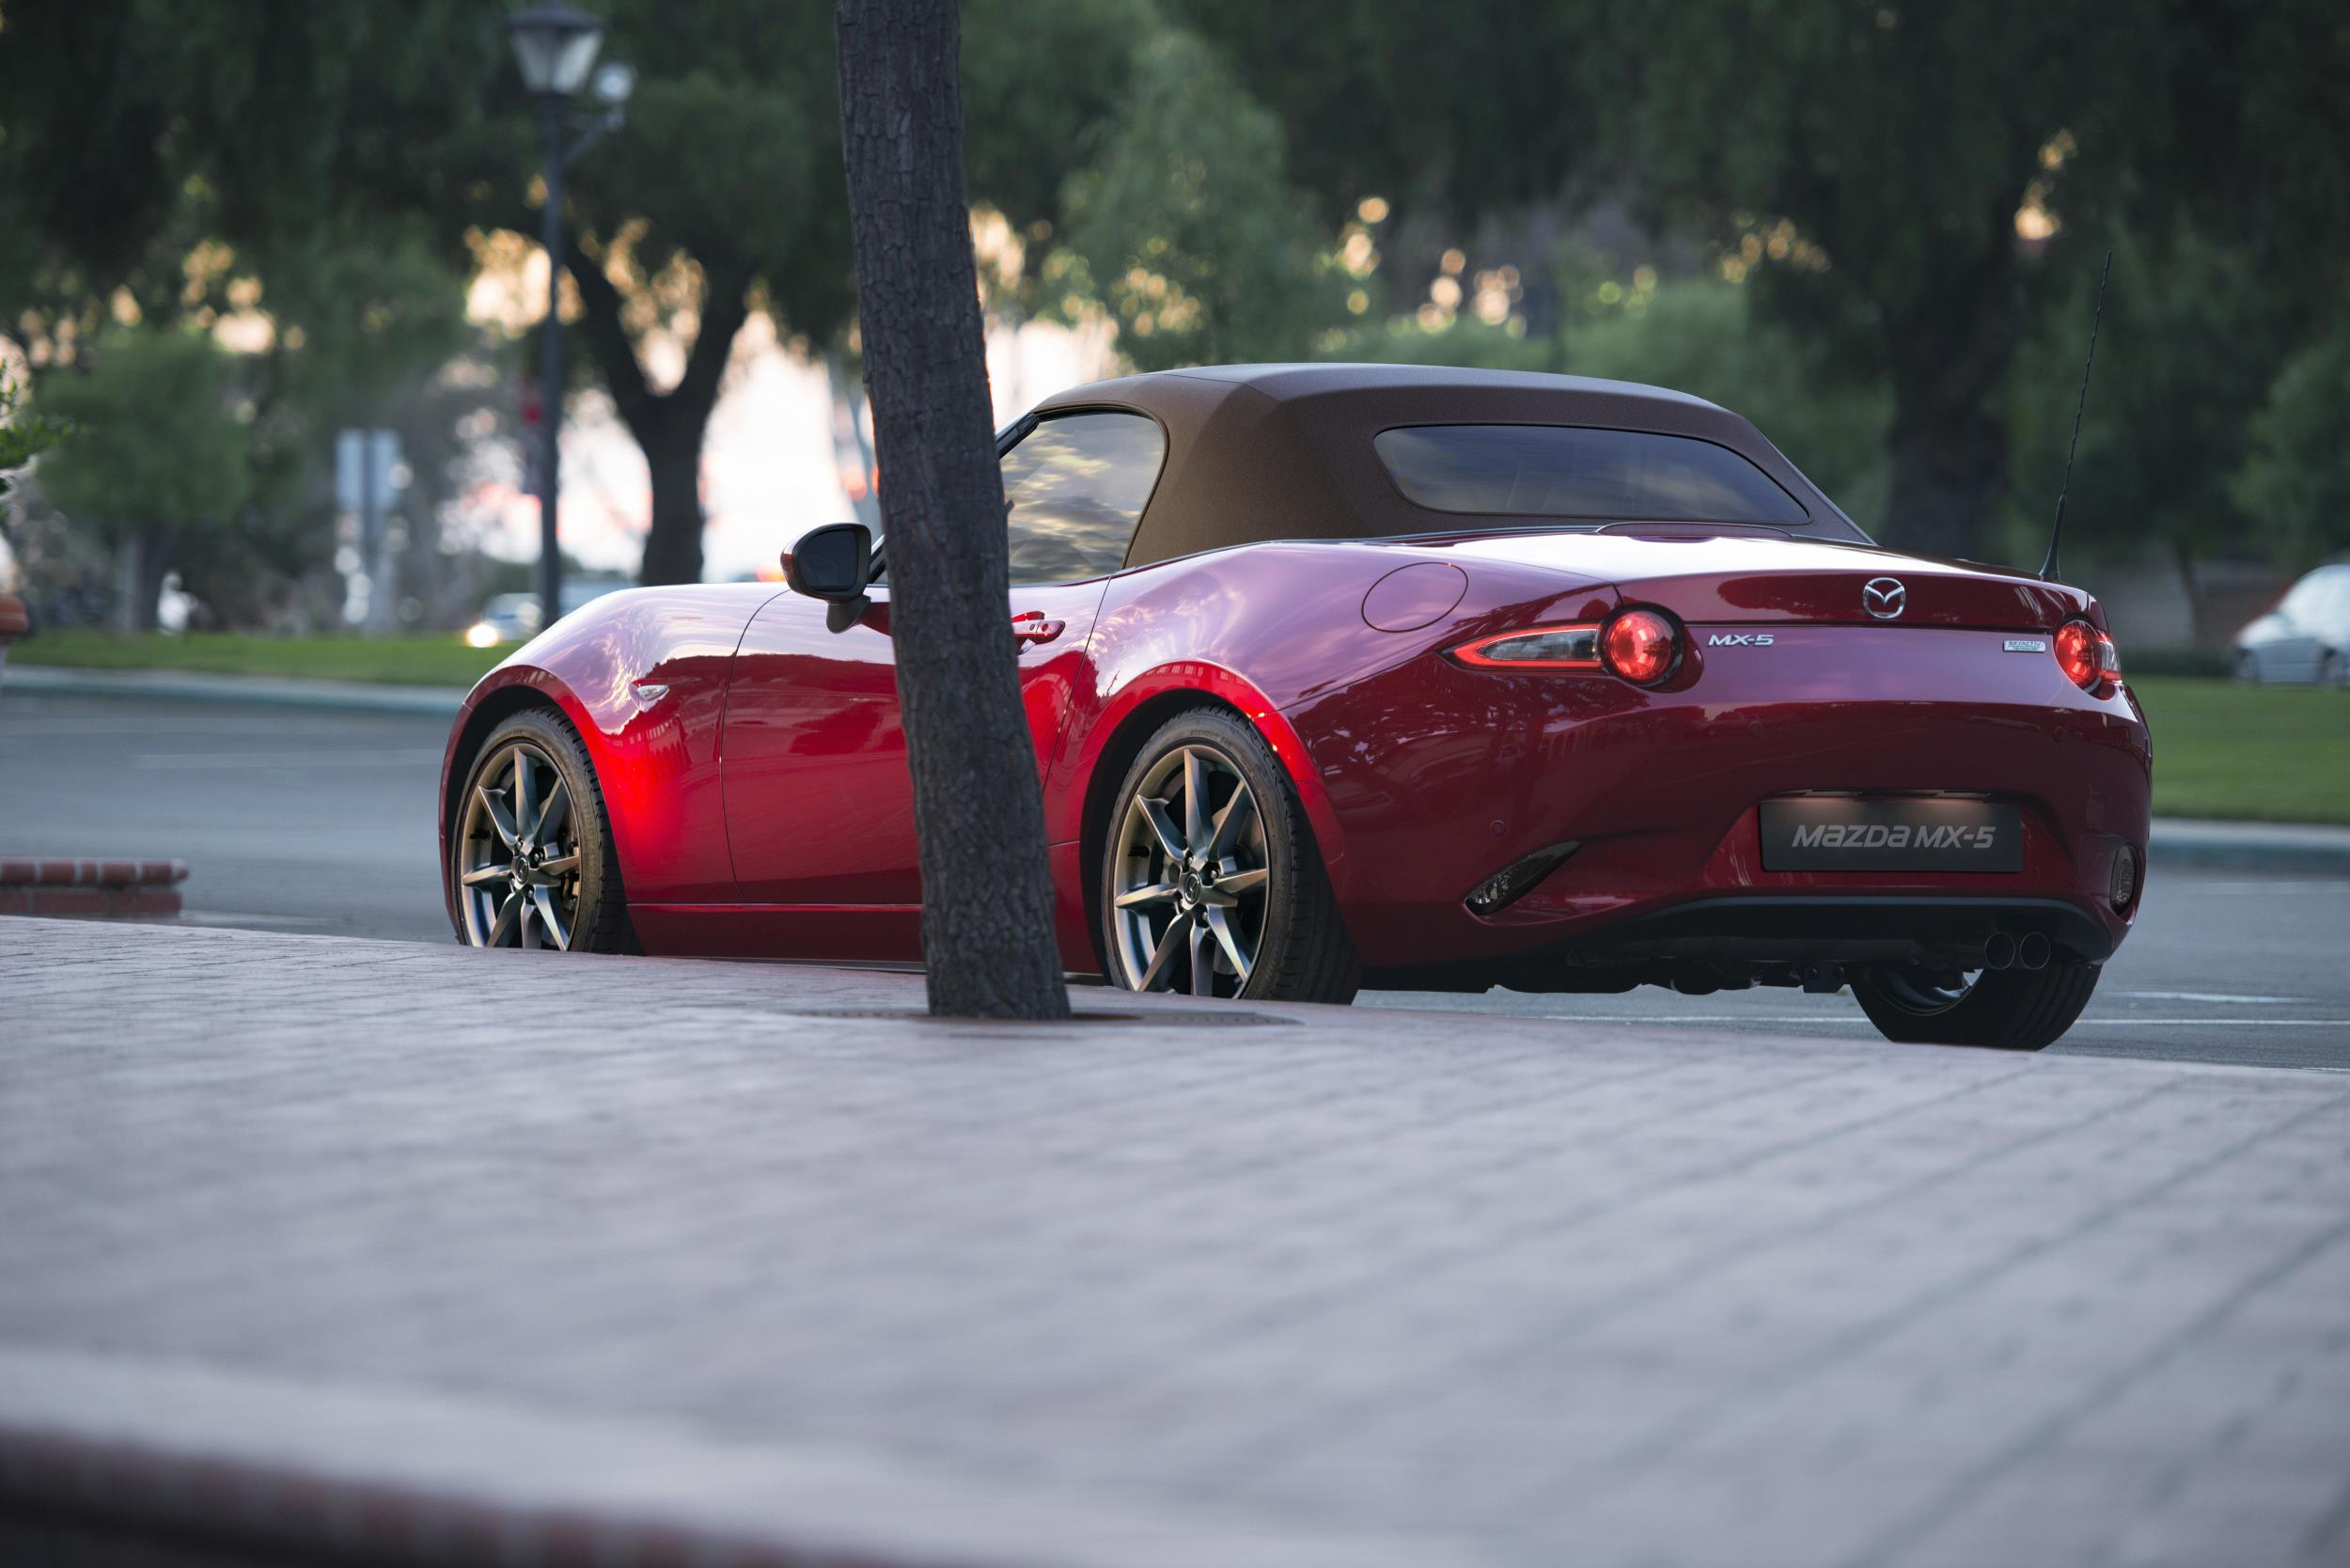 A red Mazda MX5 Convertible